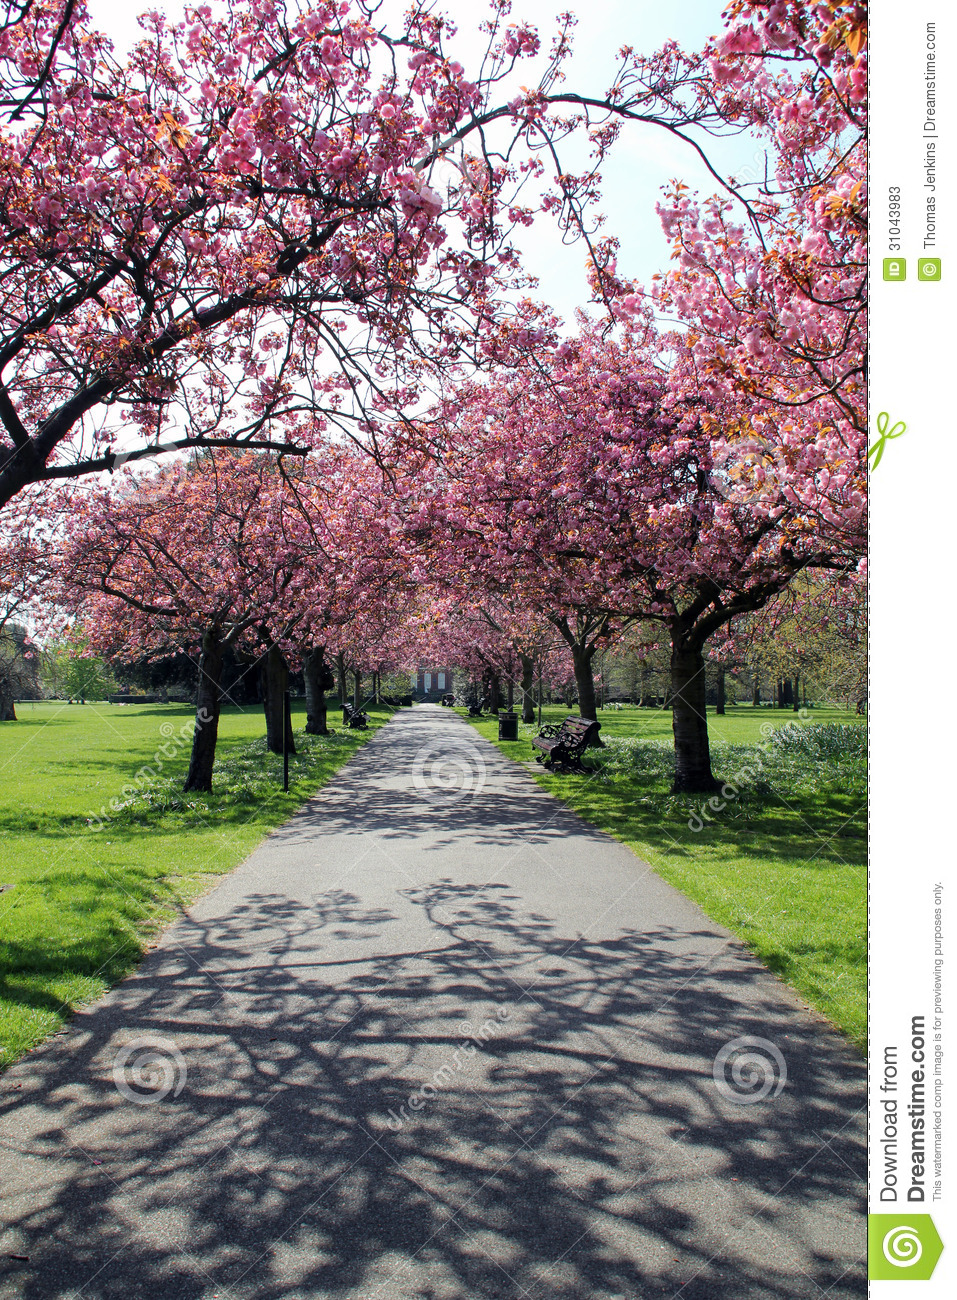 Pathway With Benches Under Pink Blossoms In Greenwich Park